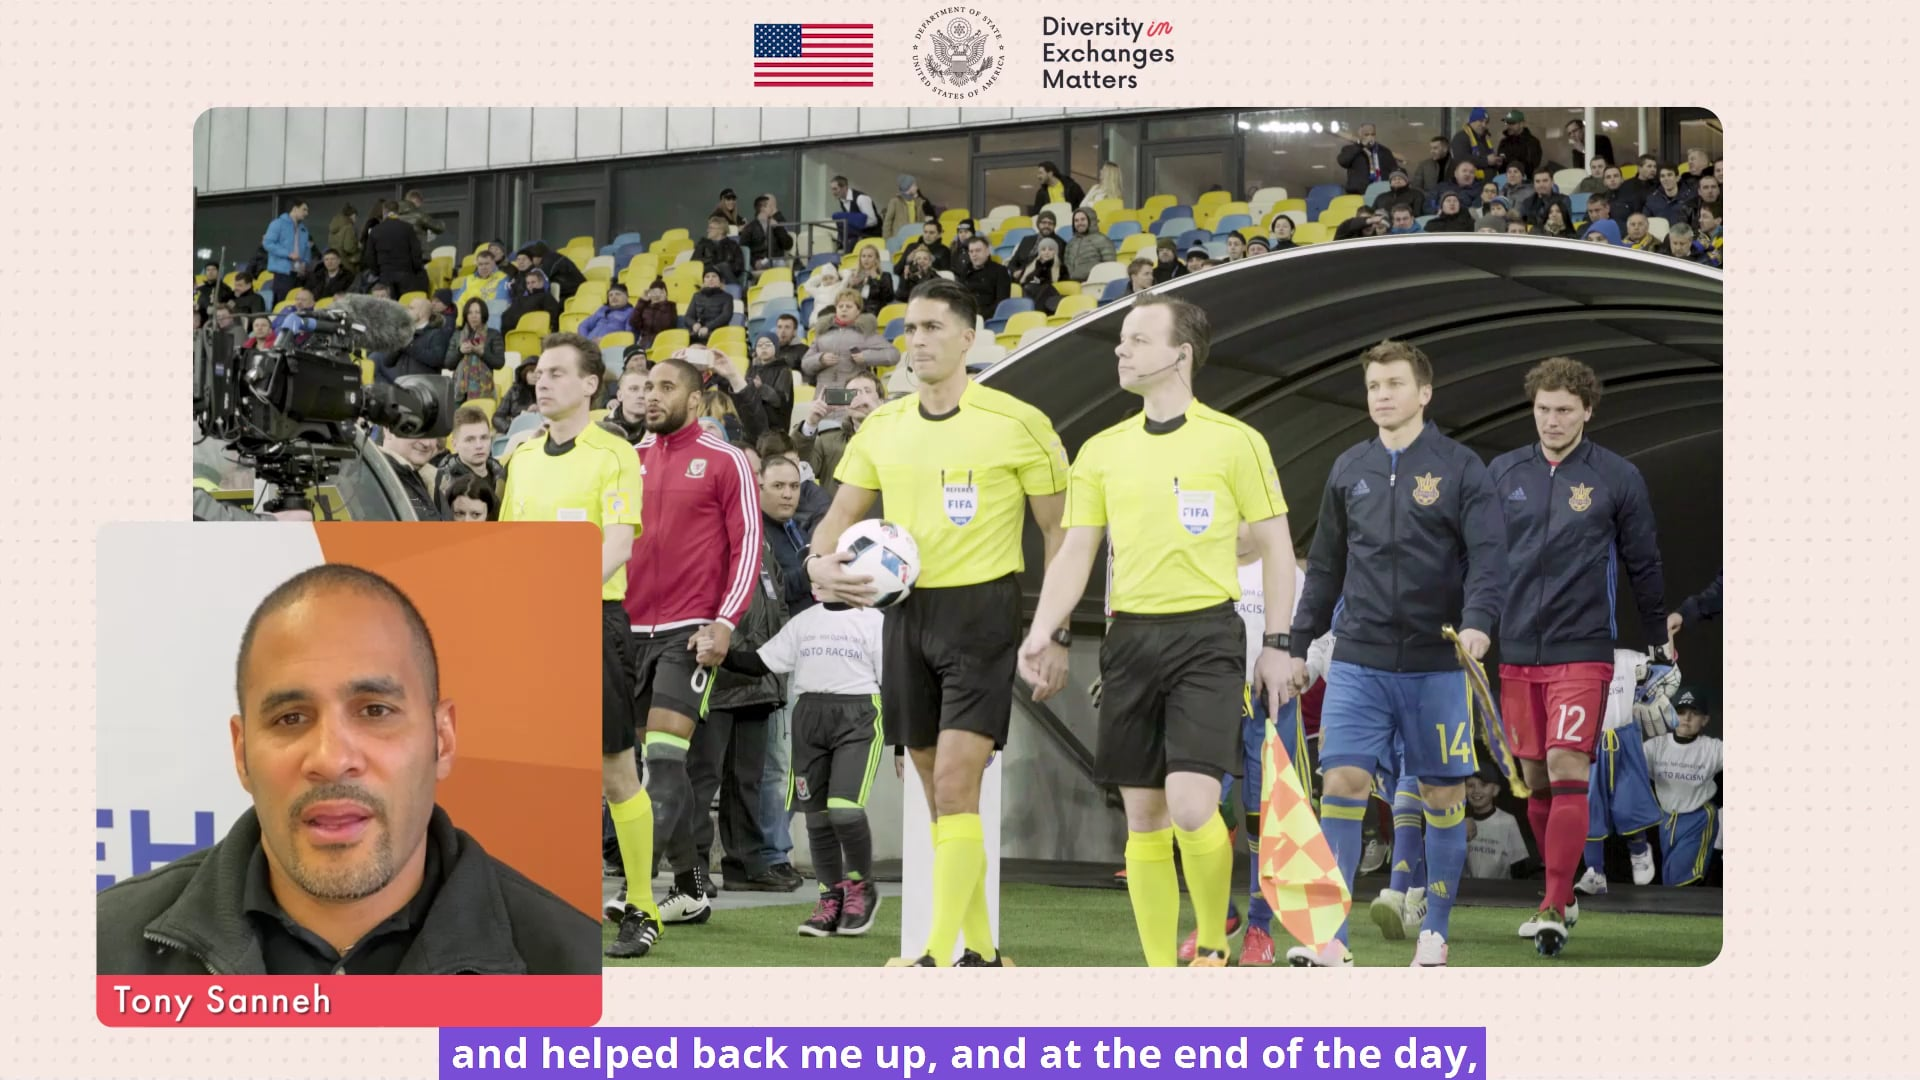 Major League Soccer Player Tony Sanneh talks about Diversity and Inclusion in Soccer